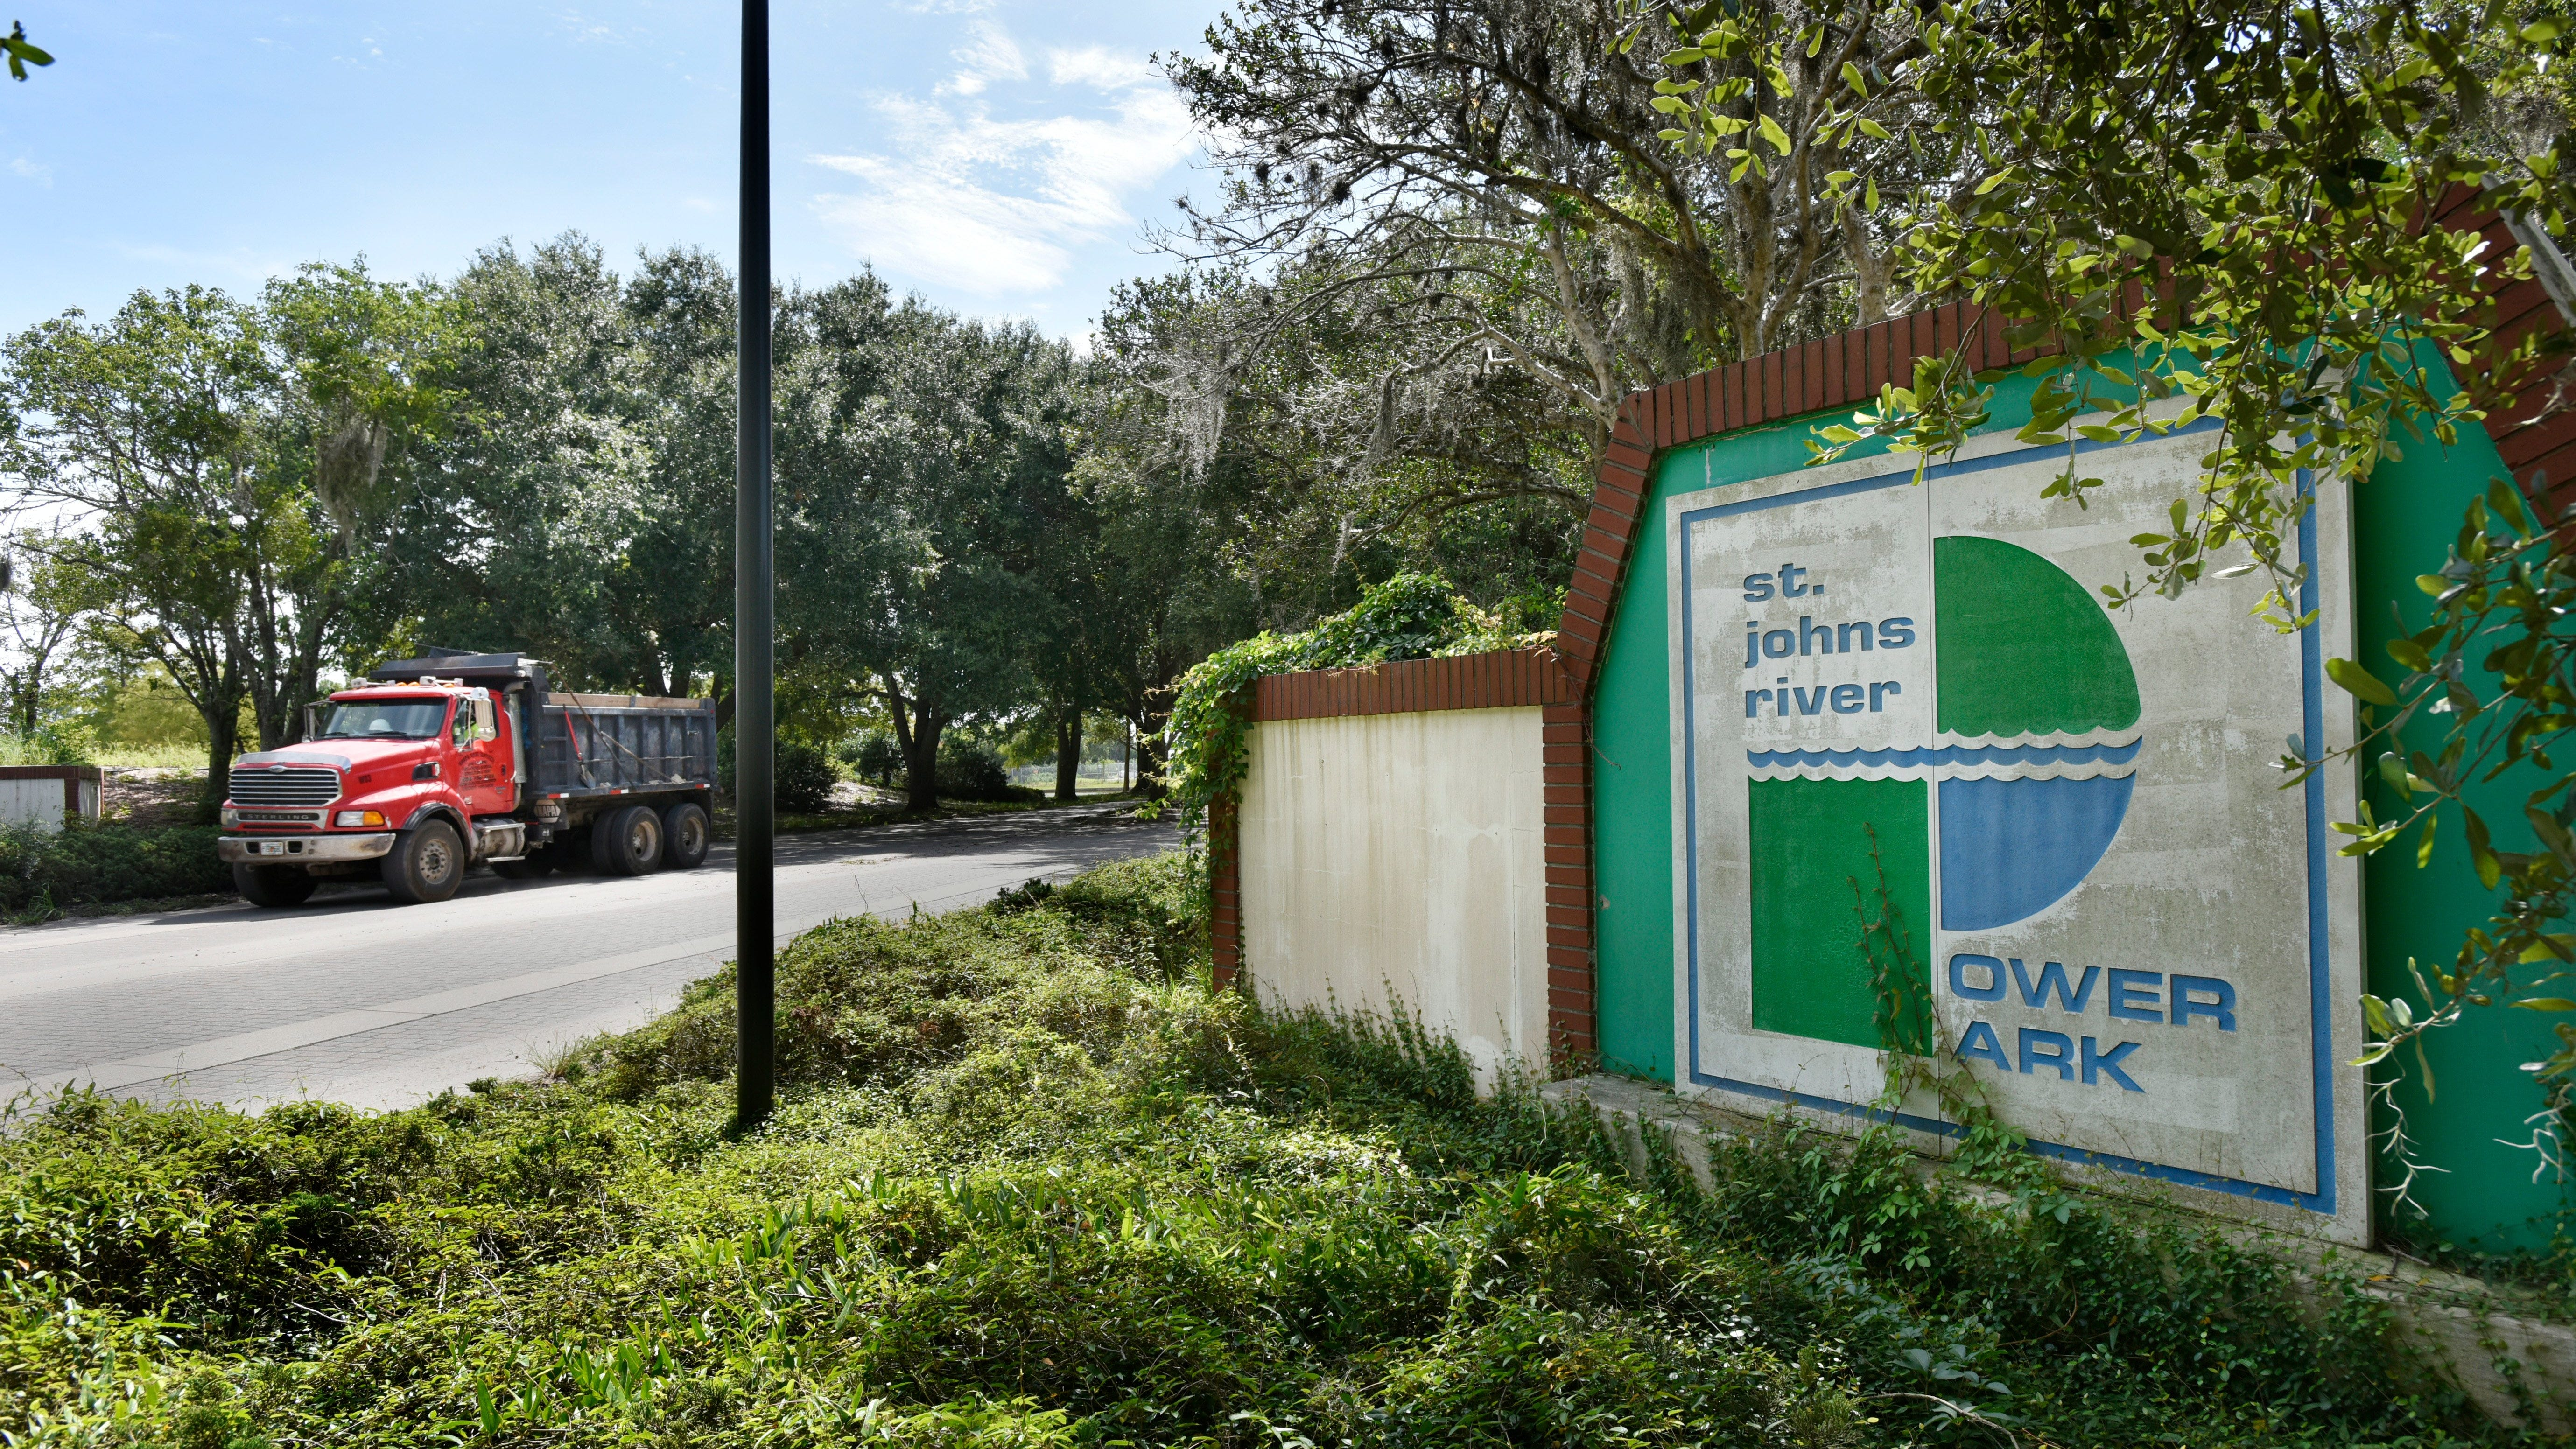 A dump truck carrying debris from the demolished electric plant at the St. Johns River Power Park exits the property onto New Berlin Road. While removal of removal of debris  will continue through the fall, JEA will seek a partner for bringing in a new kind of development to 1,200 acres owned by the utility.